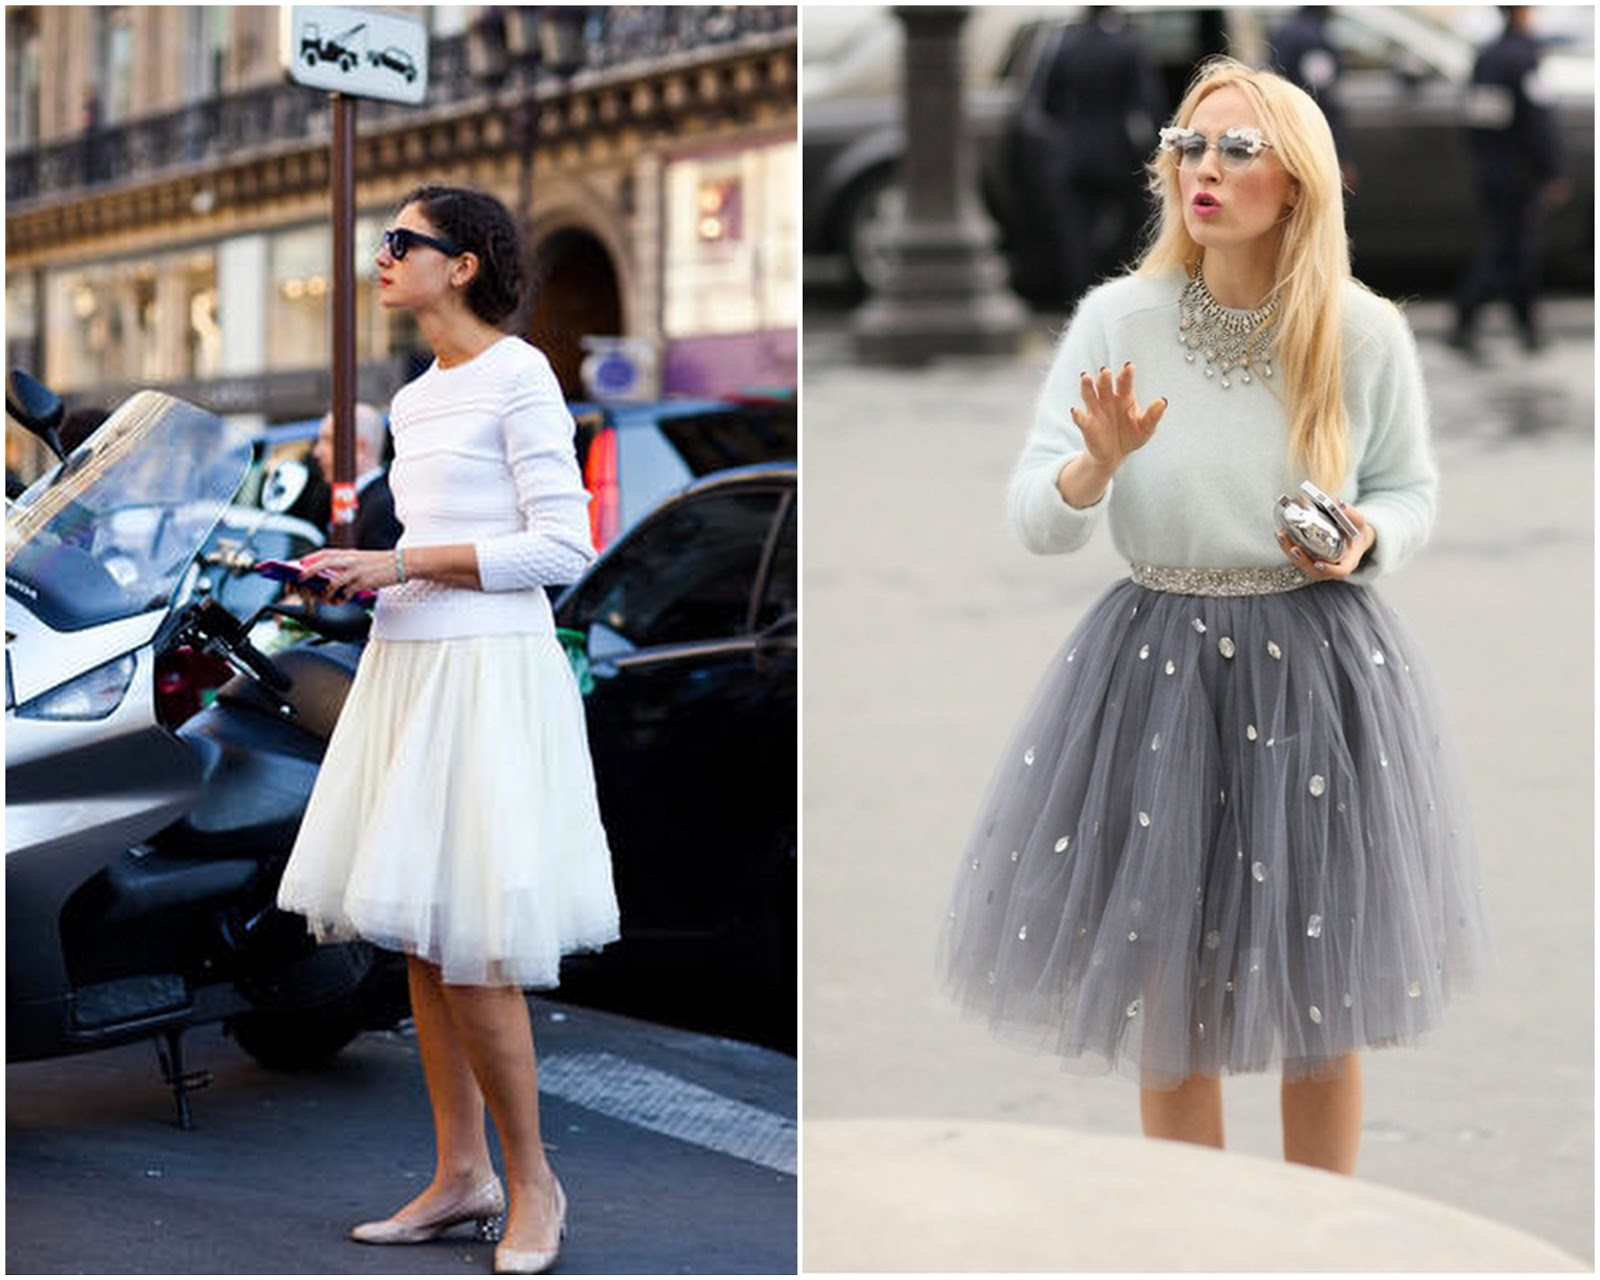 DIY Inspiration The Tulle Skirt Aka The Perfect Skirt For The Holidays